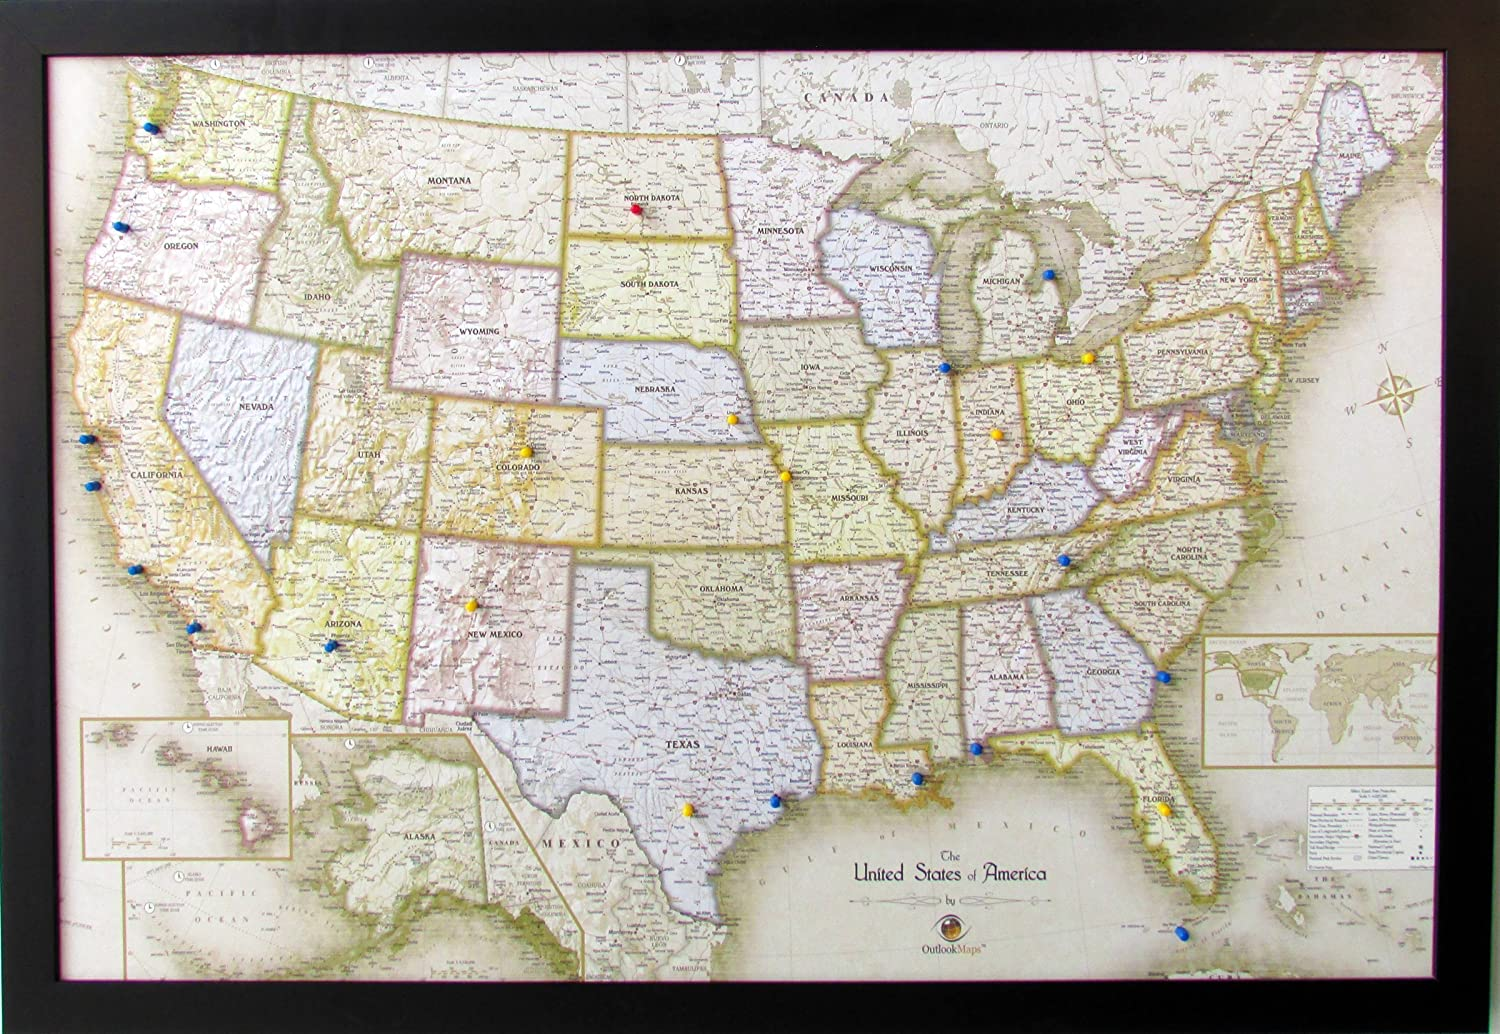 Homemagnetics HM3322USAM Magnetic USA Map, 33 X 22 on clickable map of usa, electronic map of usa, geophysical map of usa, grid map of usa, yello map of usa, seismic map of usa, digital map of usa, geological map of usa, color coded map of usa, wooden map of usa, barometric pressure map of usa, topographic map of usa, movable map of usa,